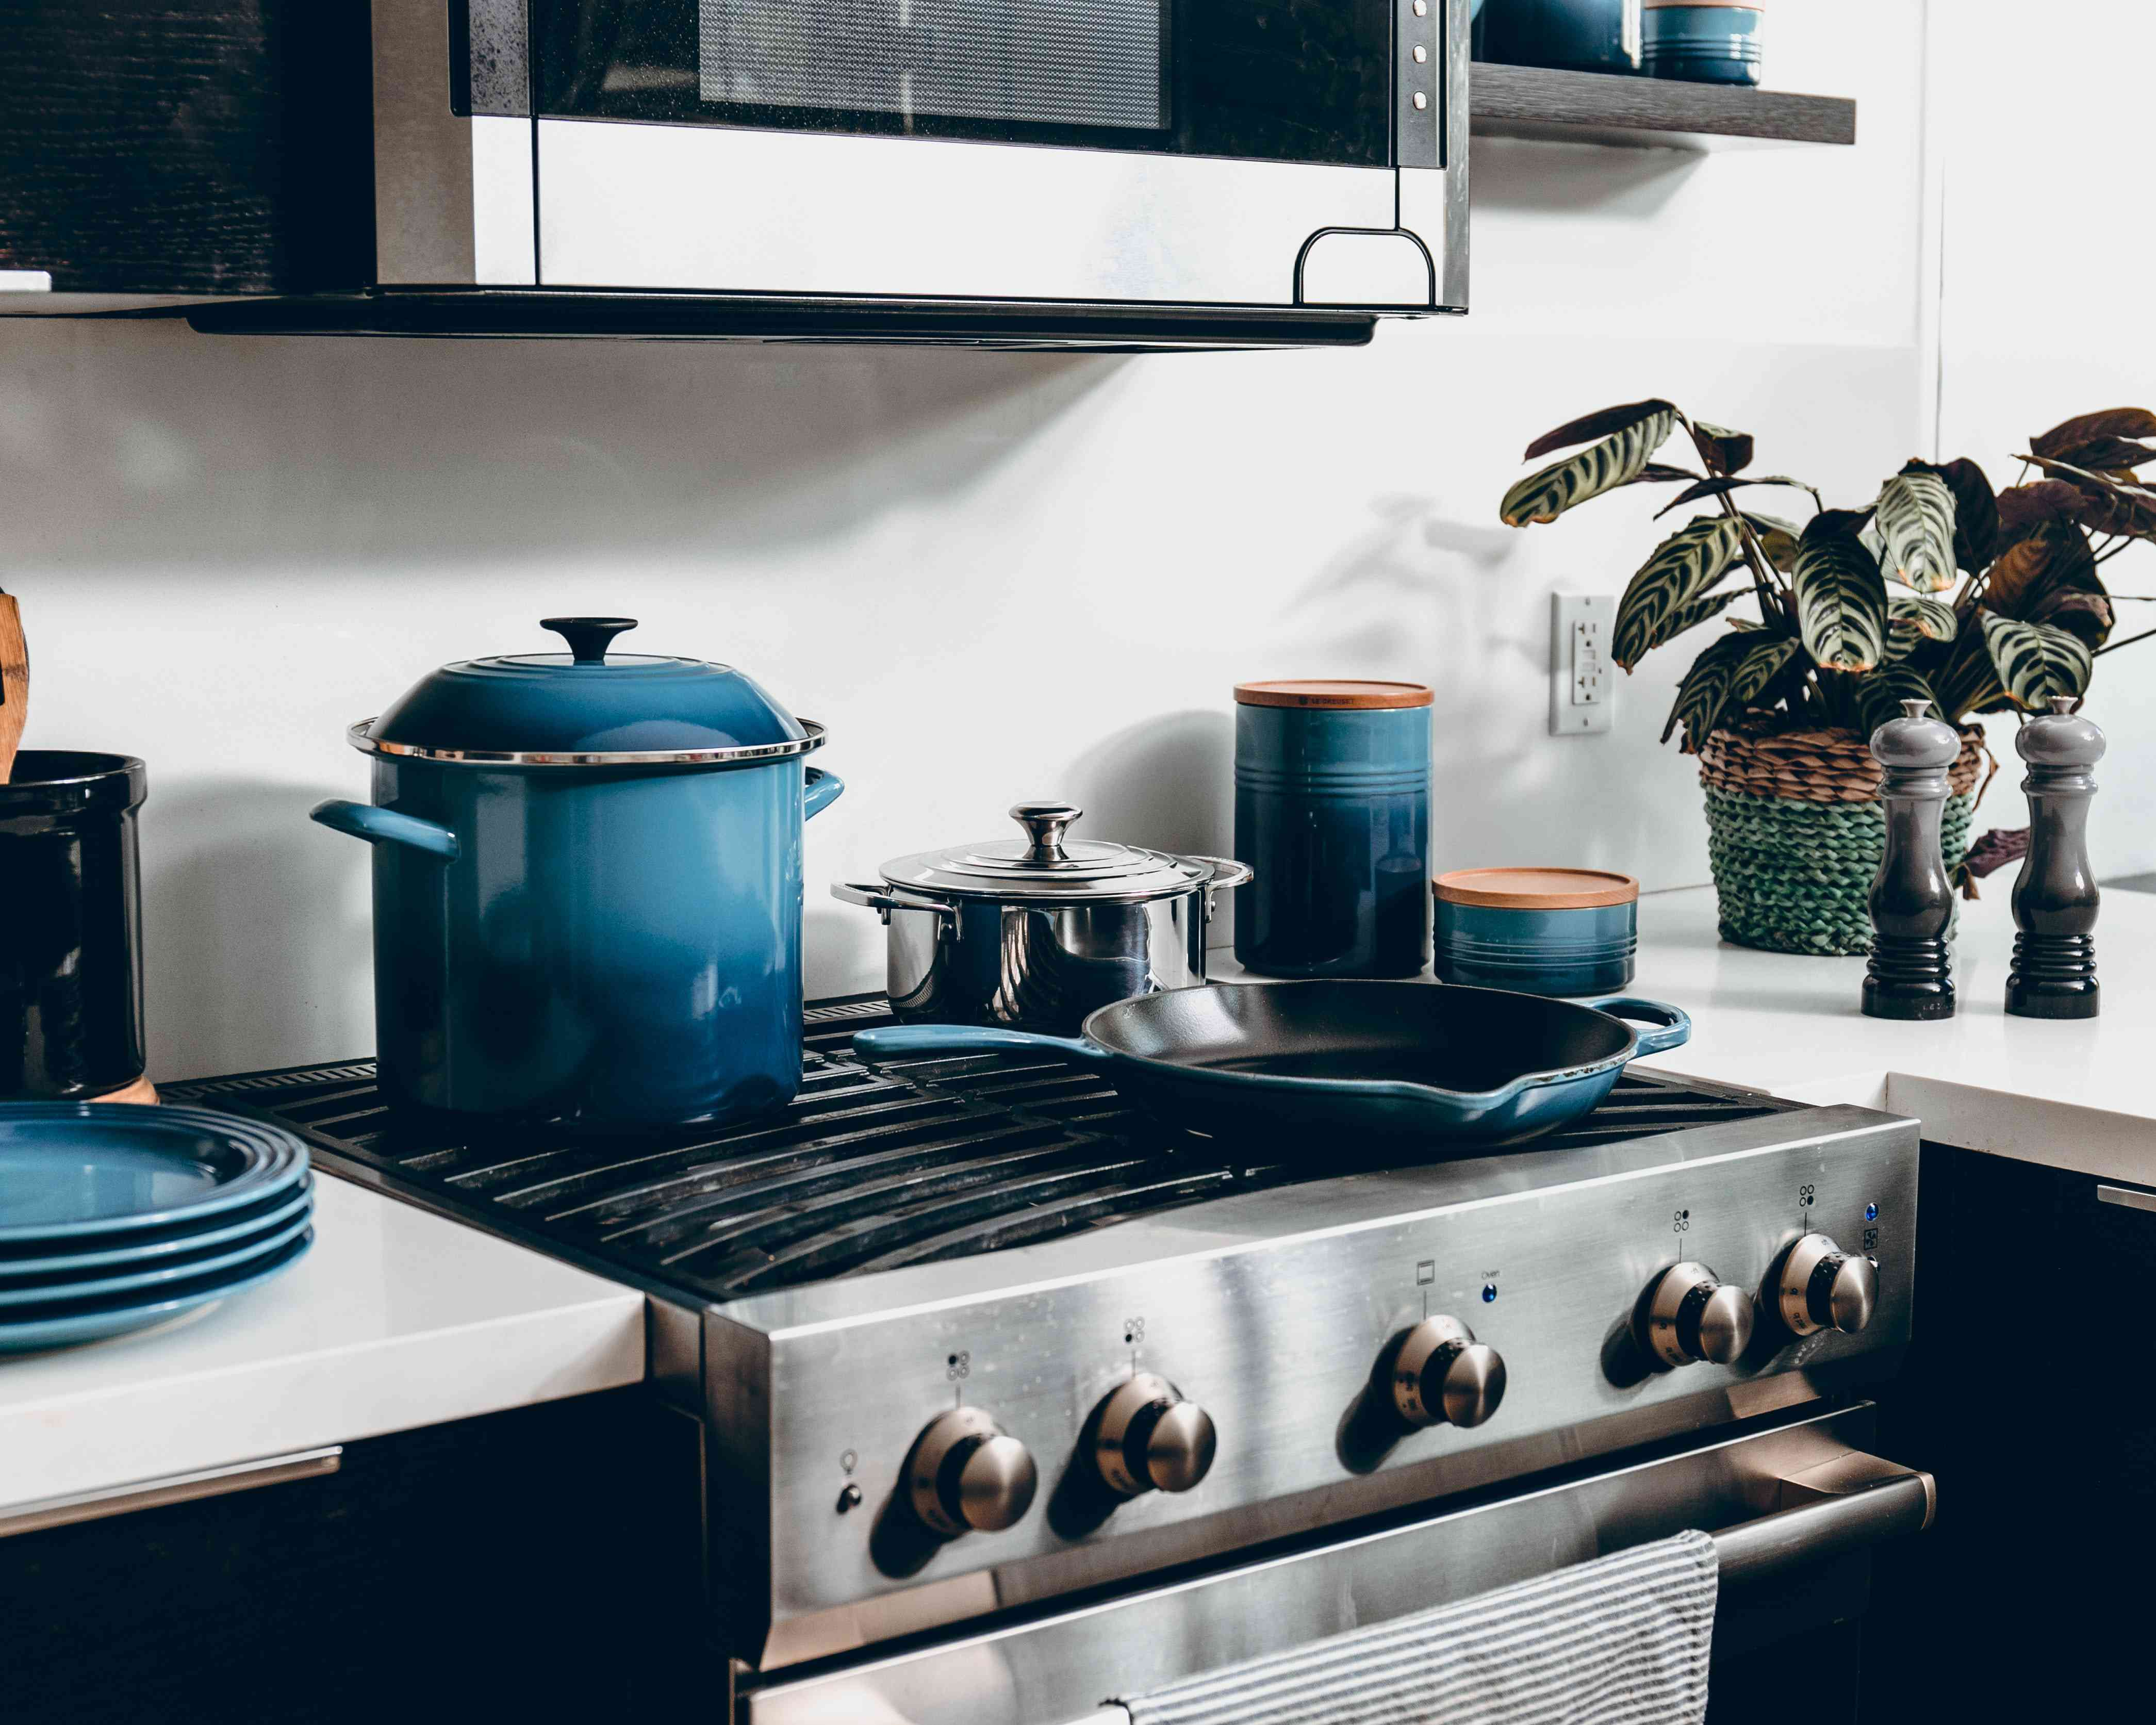 stove with blue pots, pans and plates